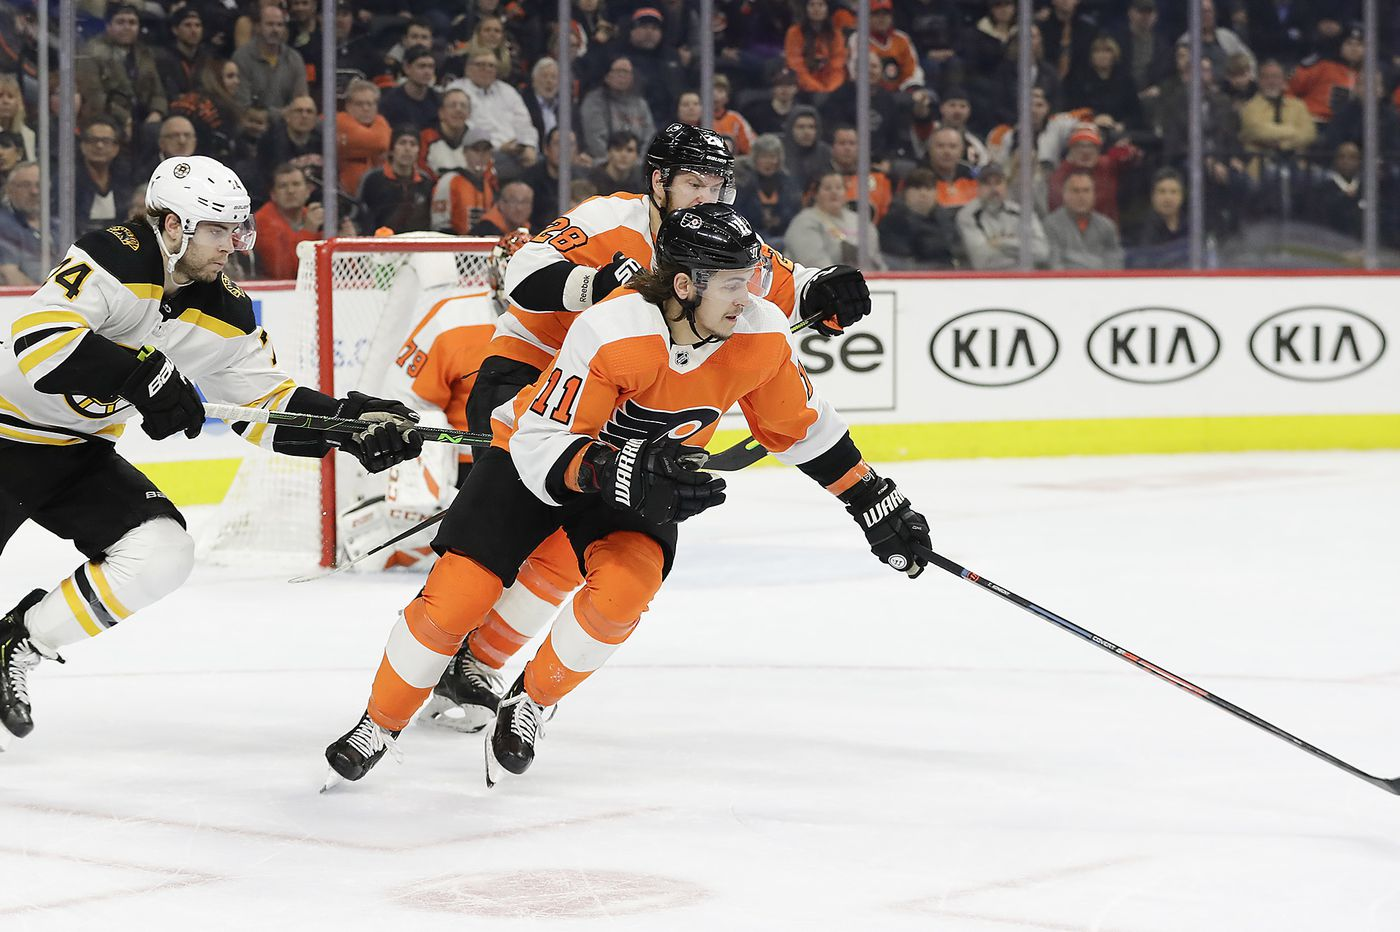 Flyers All-Star Travis Konecny: Getting under opponents' skin now surpassed by his scoring